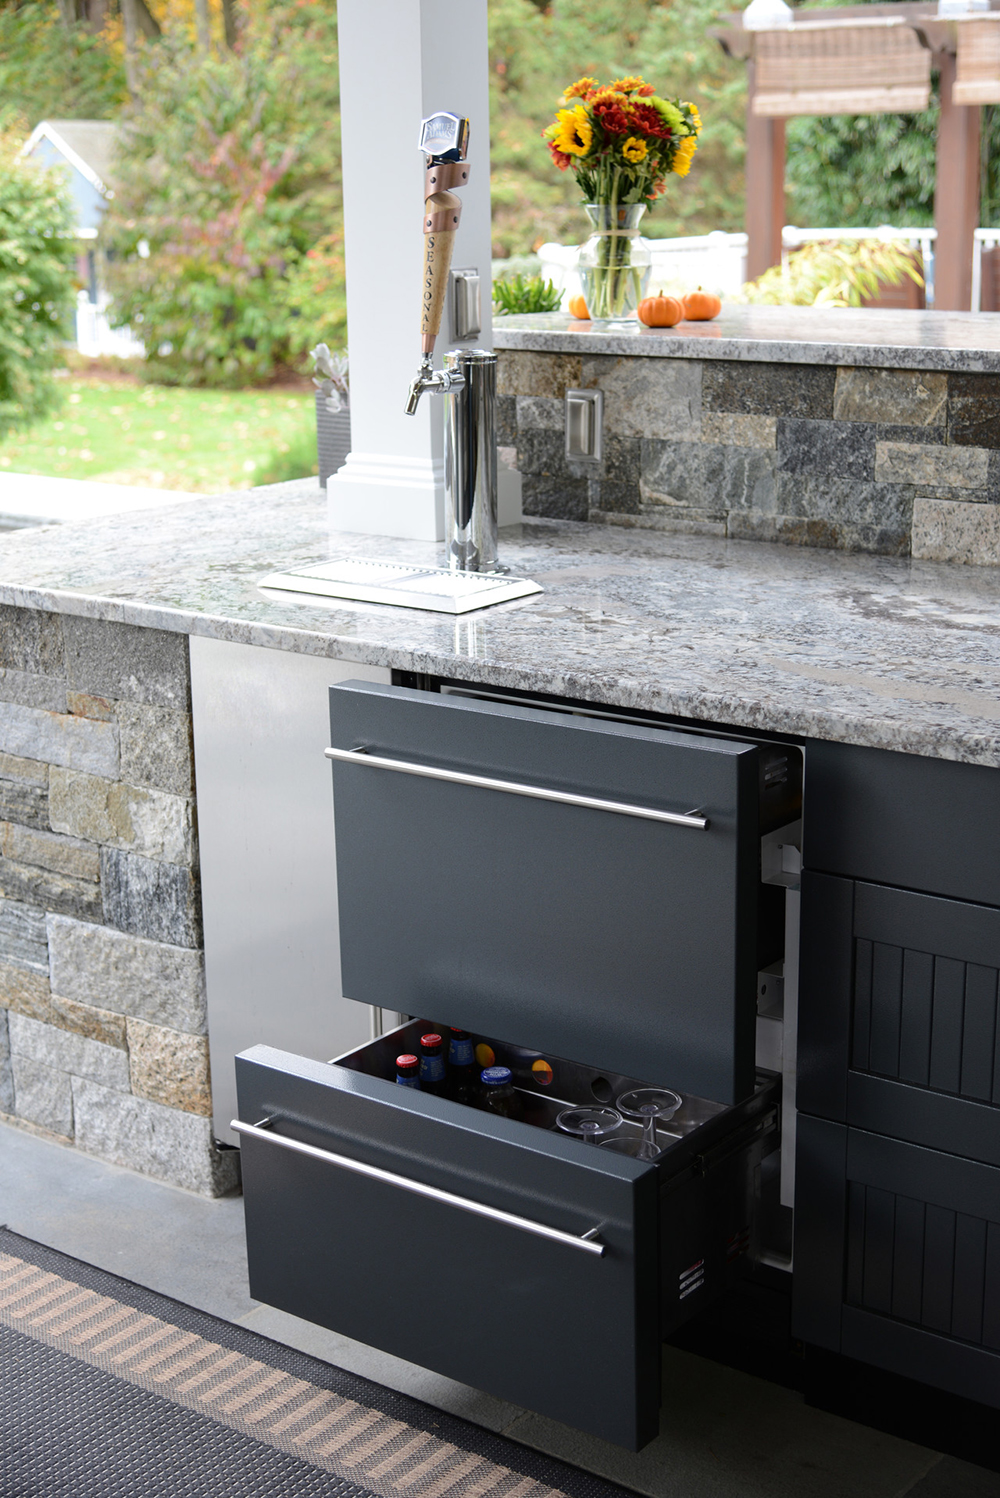 Beverages 2, Headline, Elevate Your Outdoor Kitchen To True Luxury Status, Artisan Outdoor Kitchens, Colorado Homes And Lifestyles